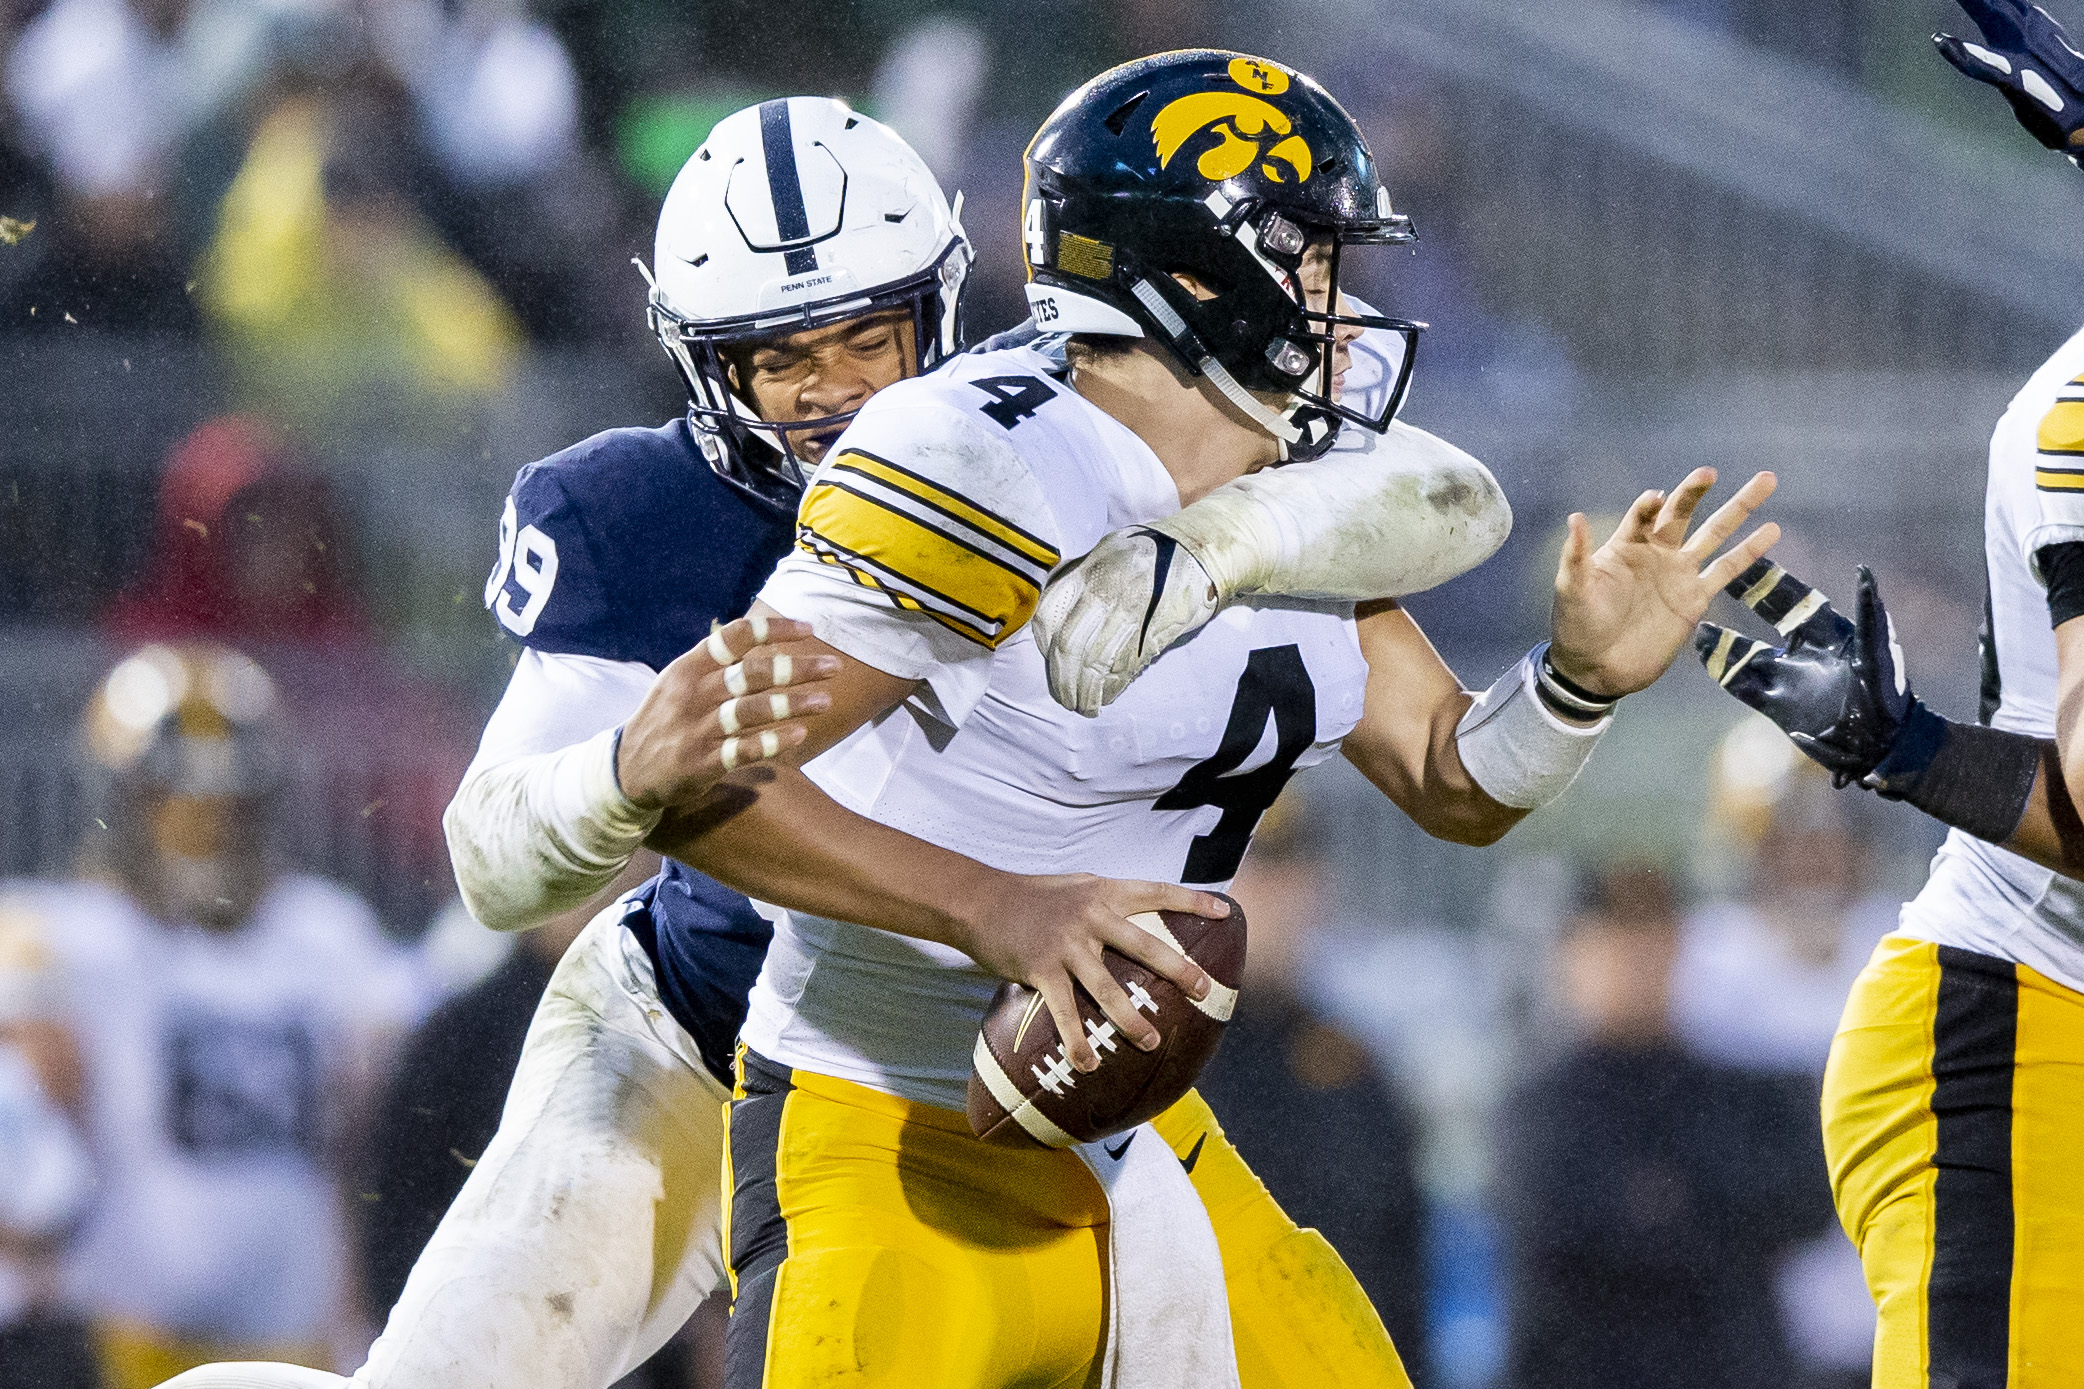 Penn State-Iowa bold predictions: Who wins and by how much? The Lions' tight ends in focus, watch out for Epenesa, more